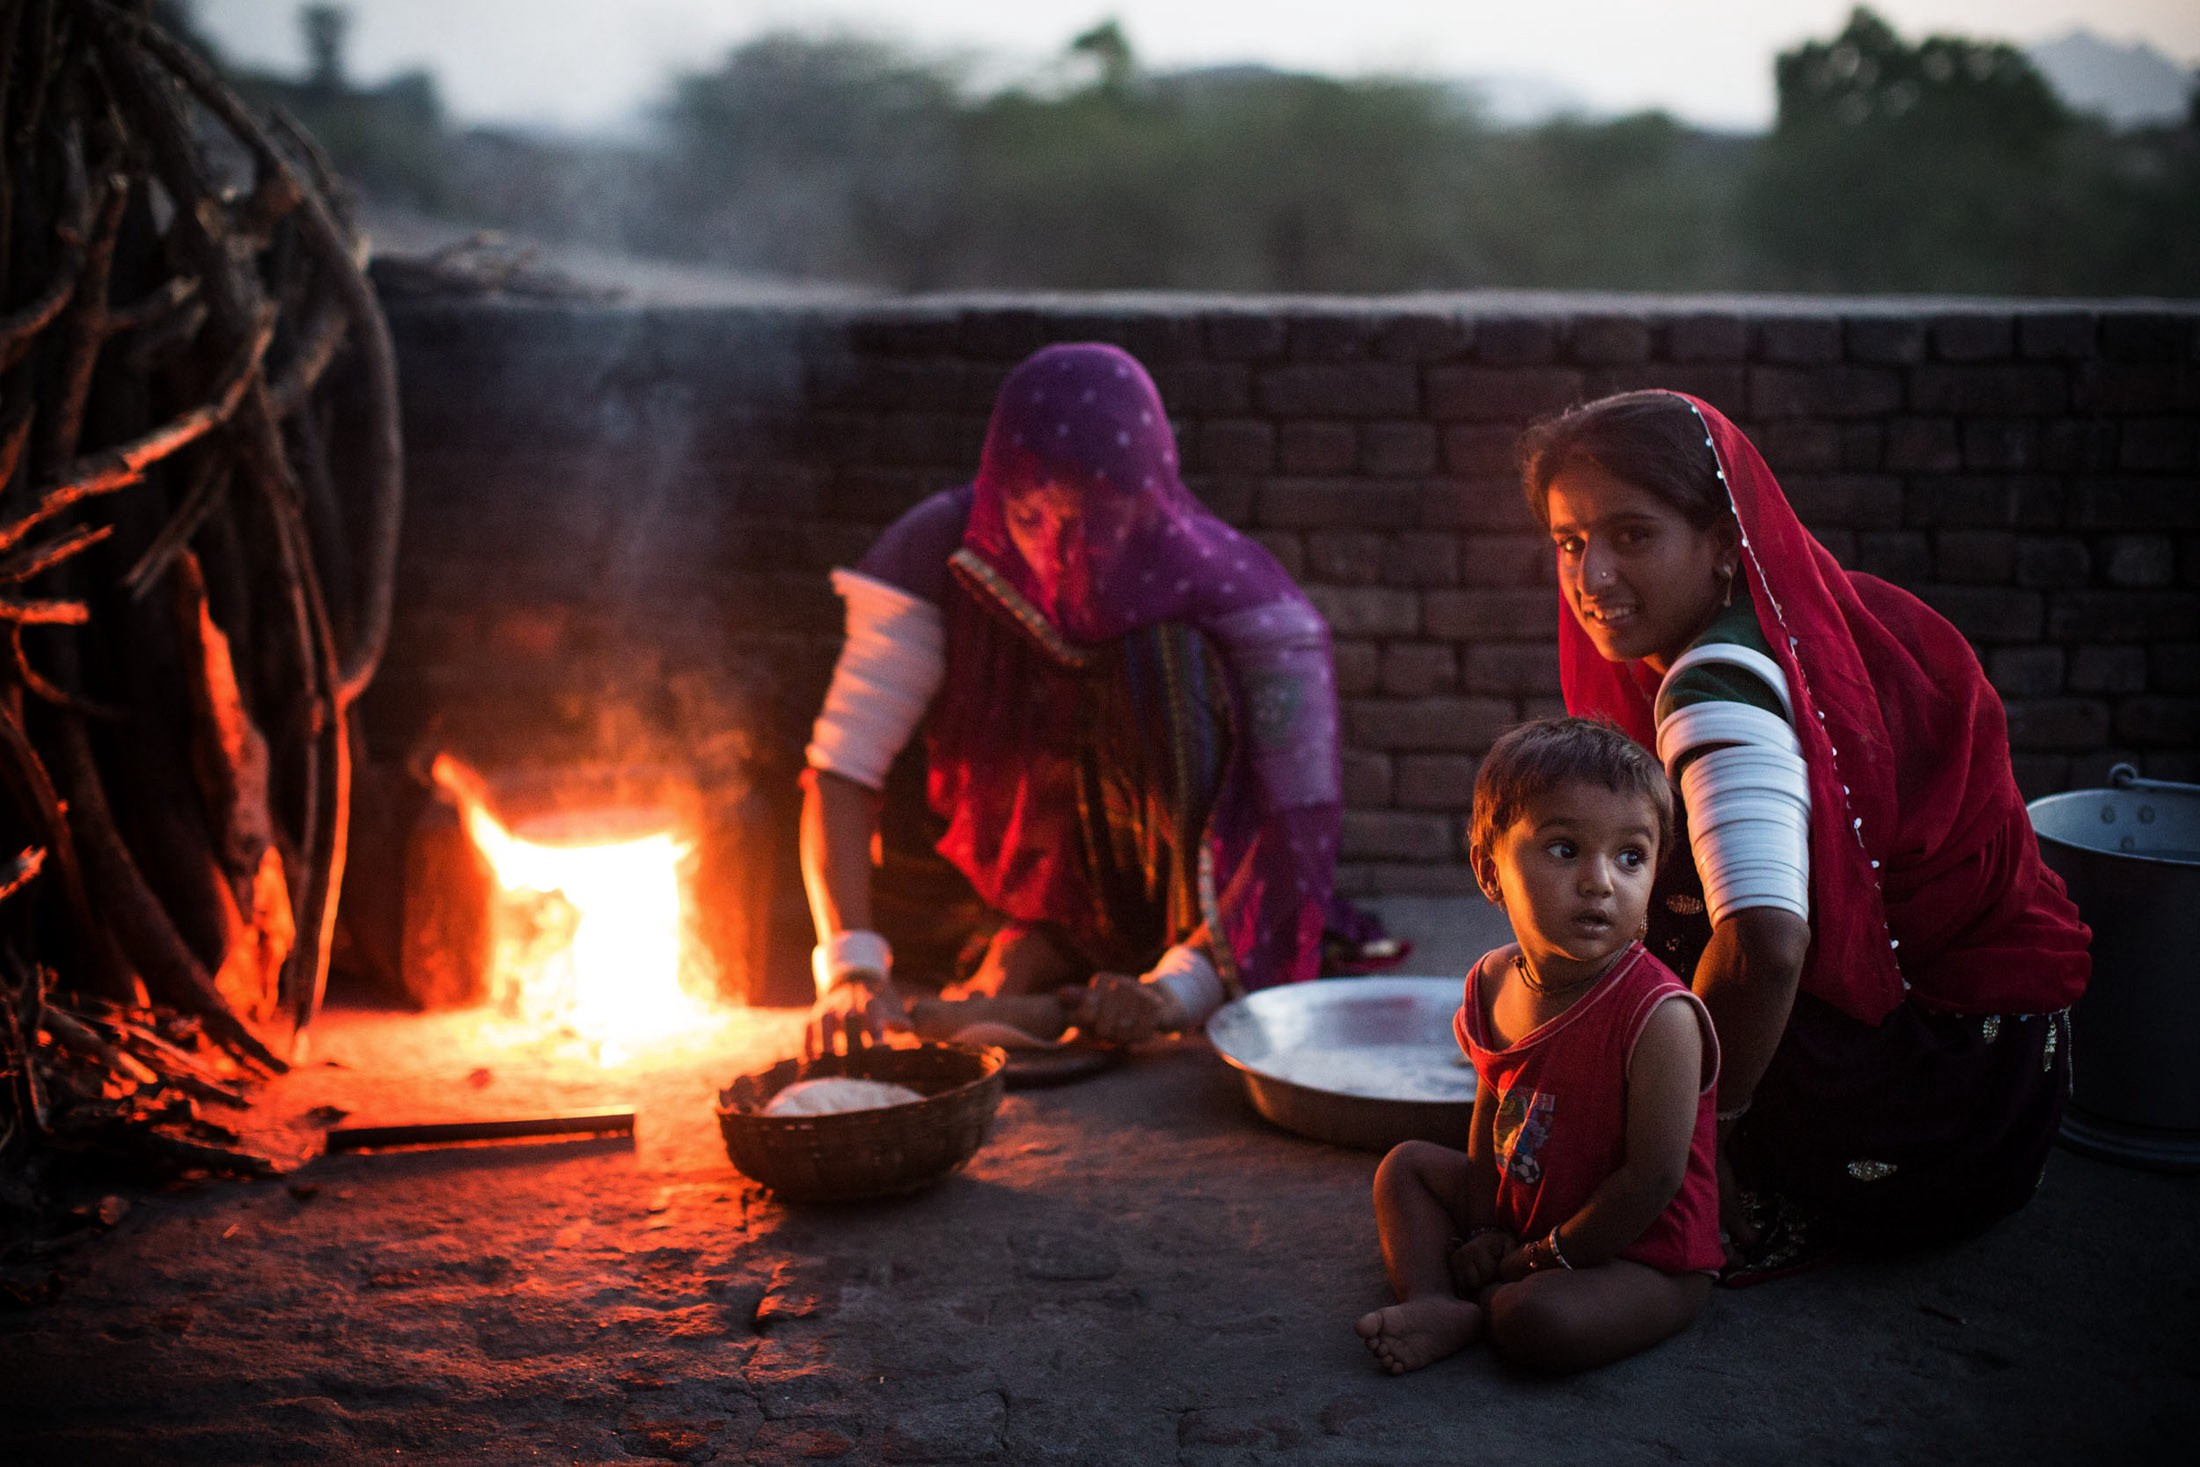 Mantra Ram and her sister roll out dough to bake chapati on a wood-fired chulha, or clay stove, for the evening meal.